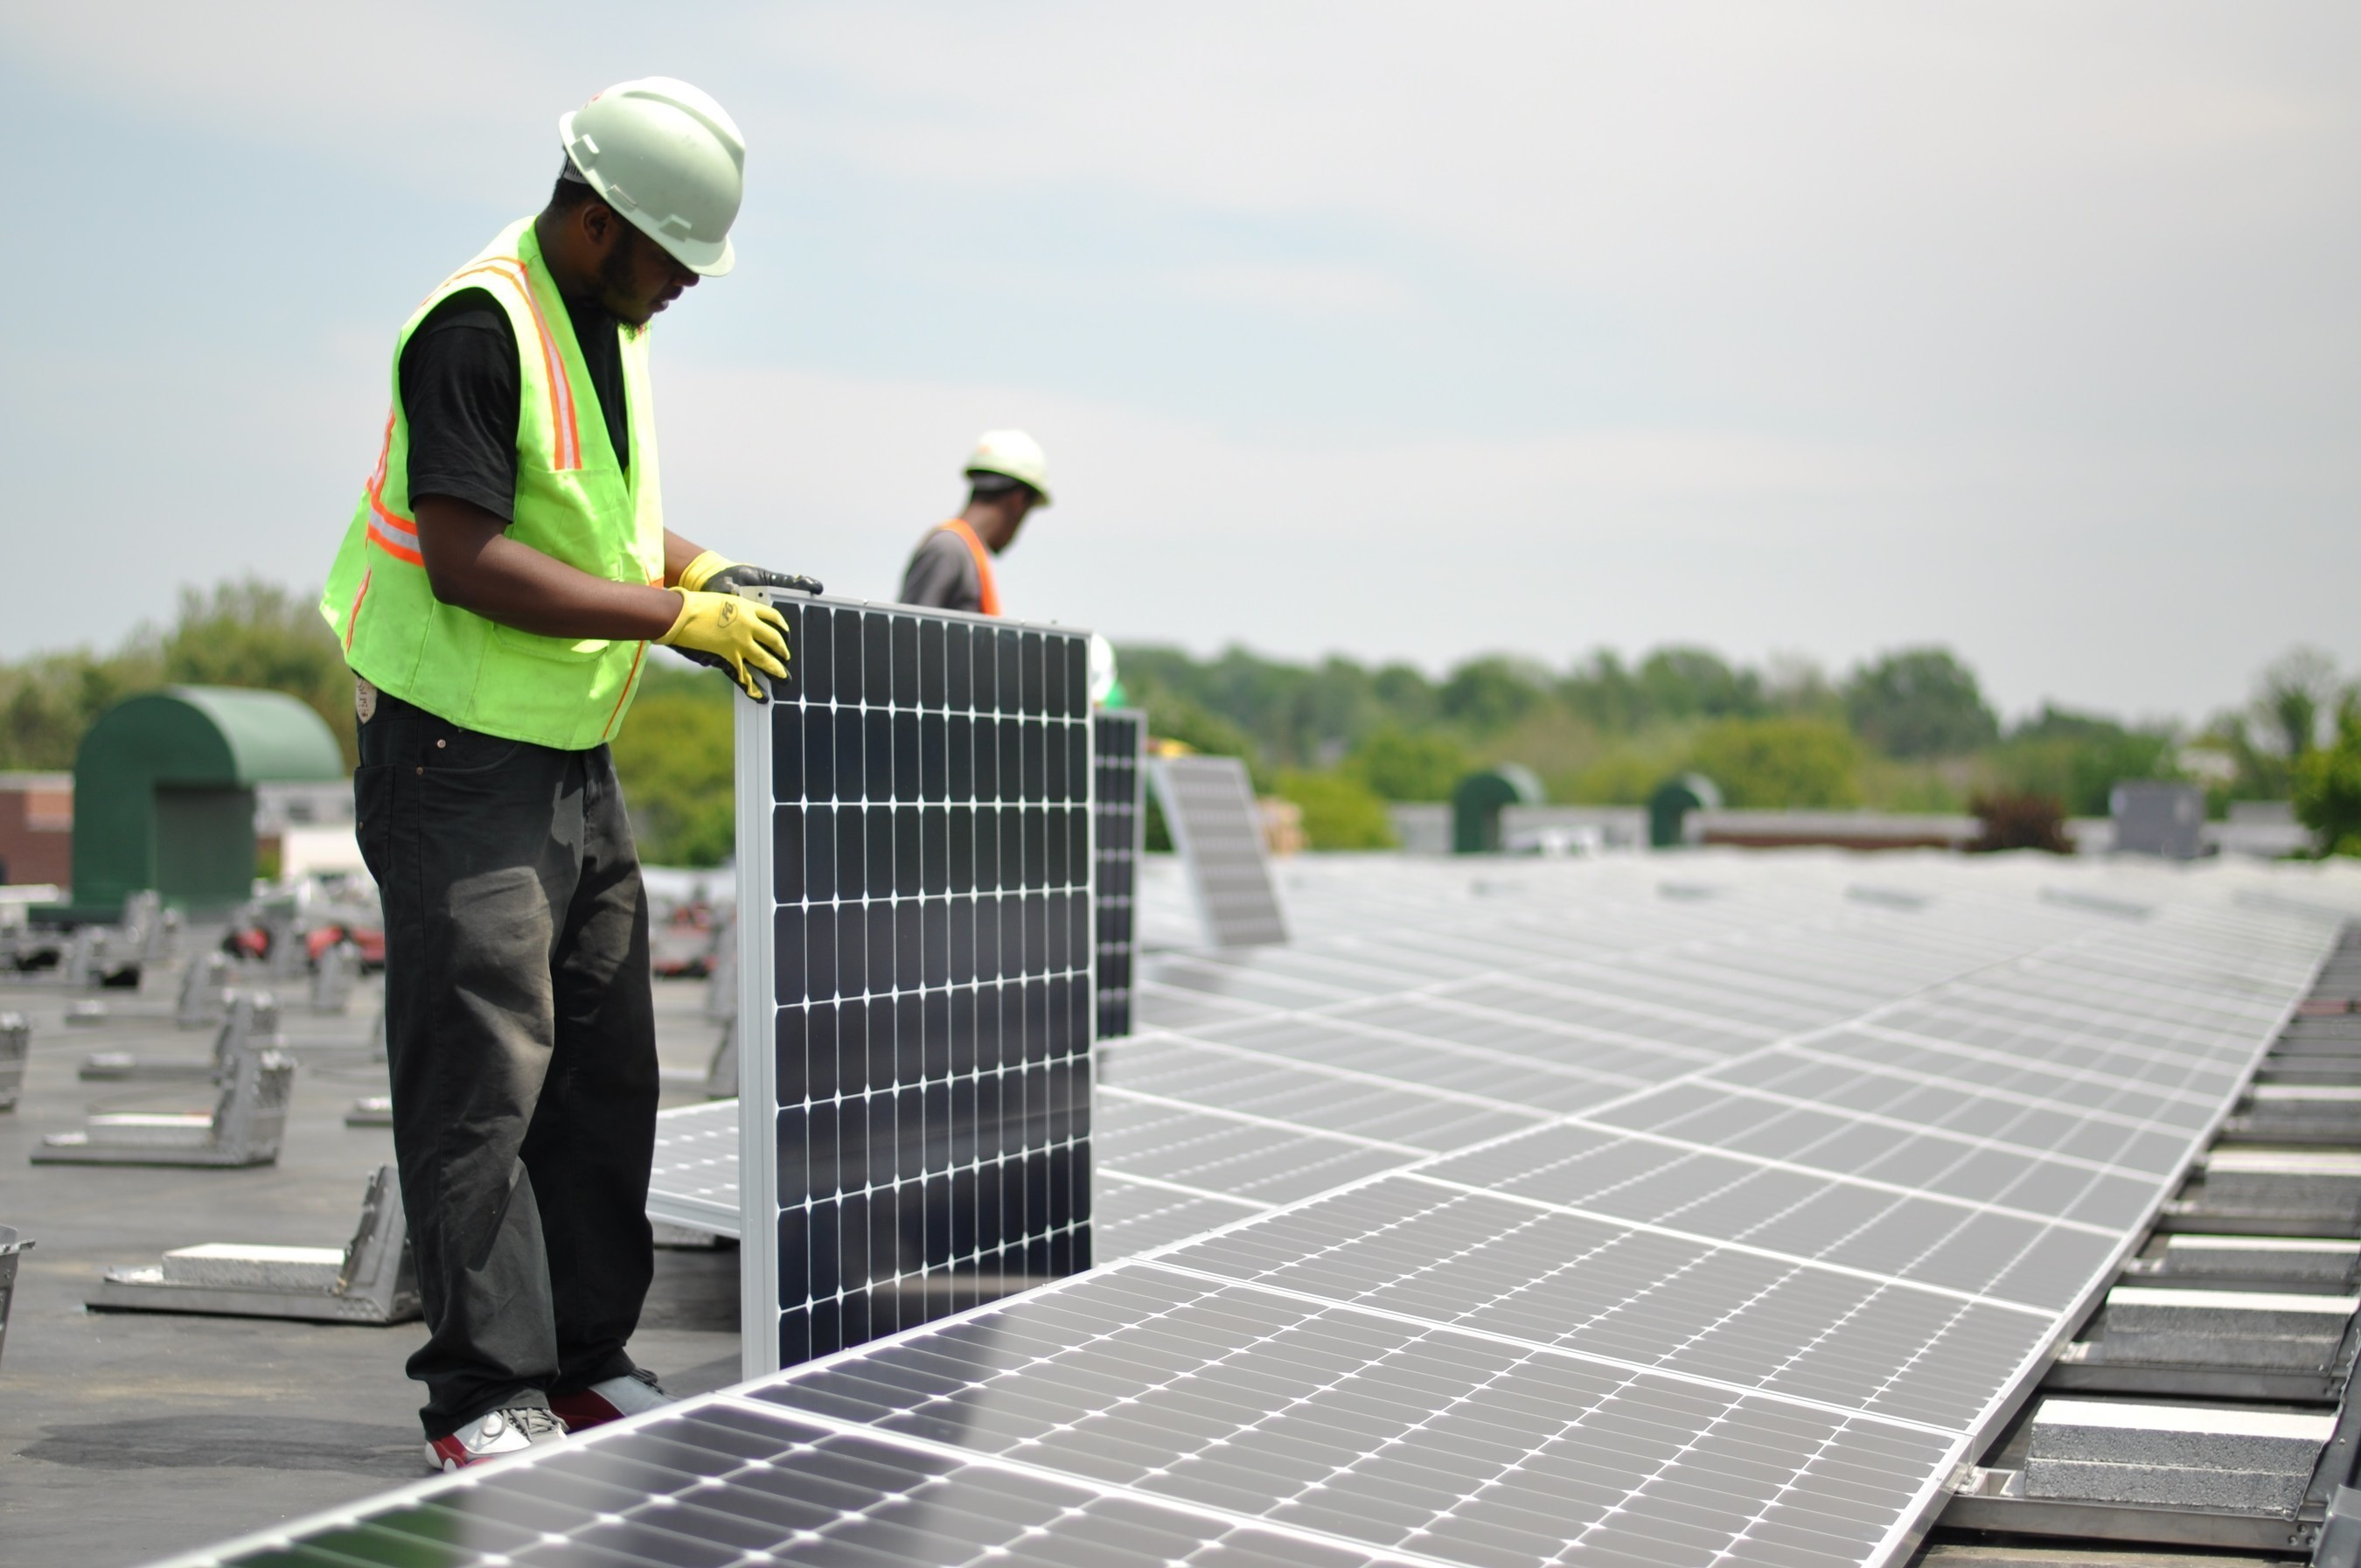 American Reading Co. is the recipient of the first SunPower Helix system installed by a SunPower dealer. The 315kW system is expected to save about $2 million over 25 years.